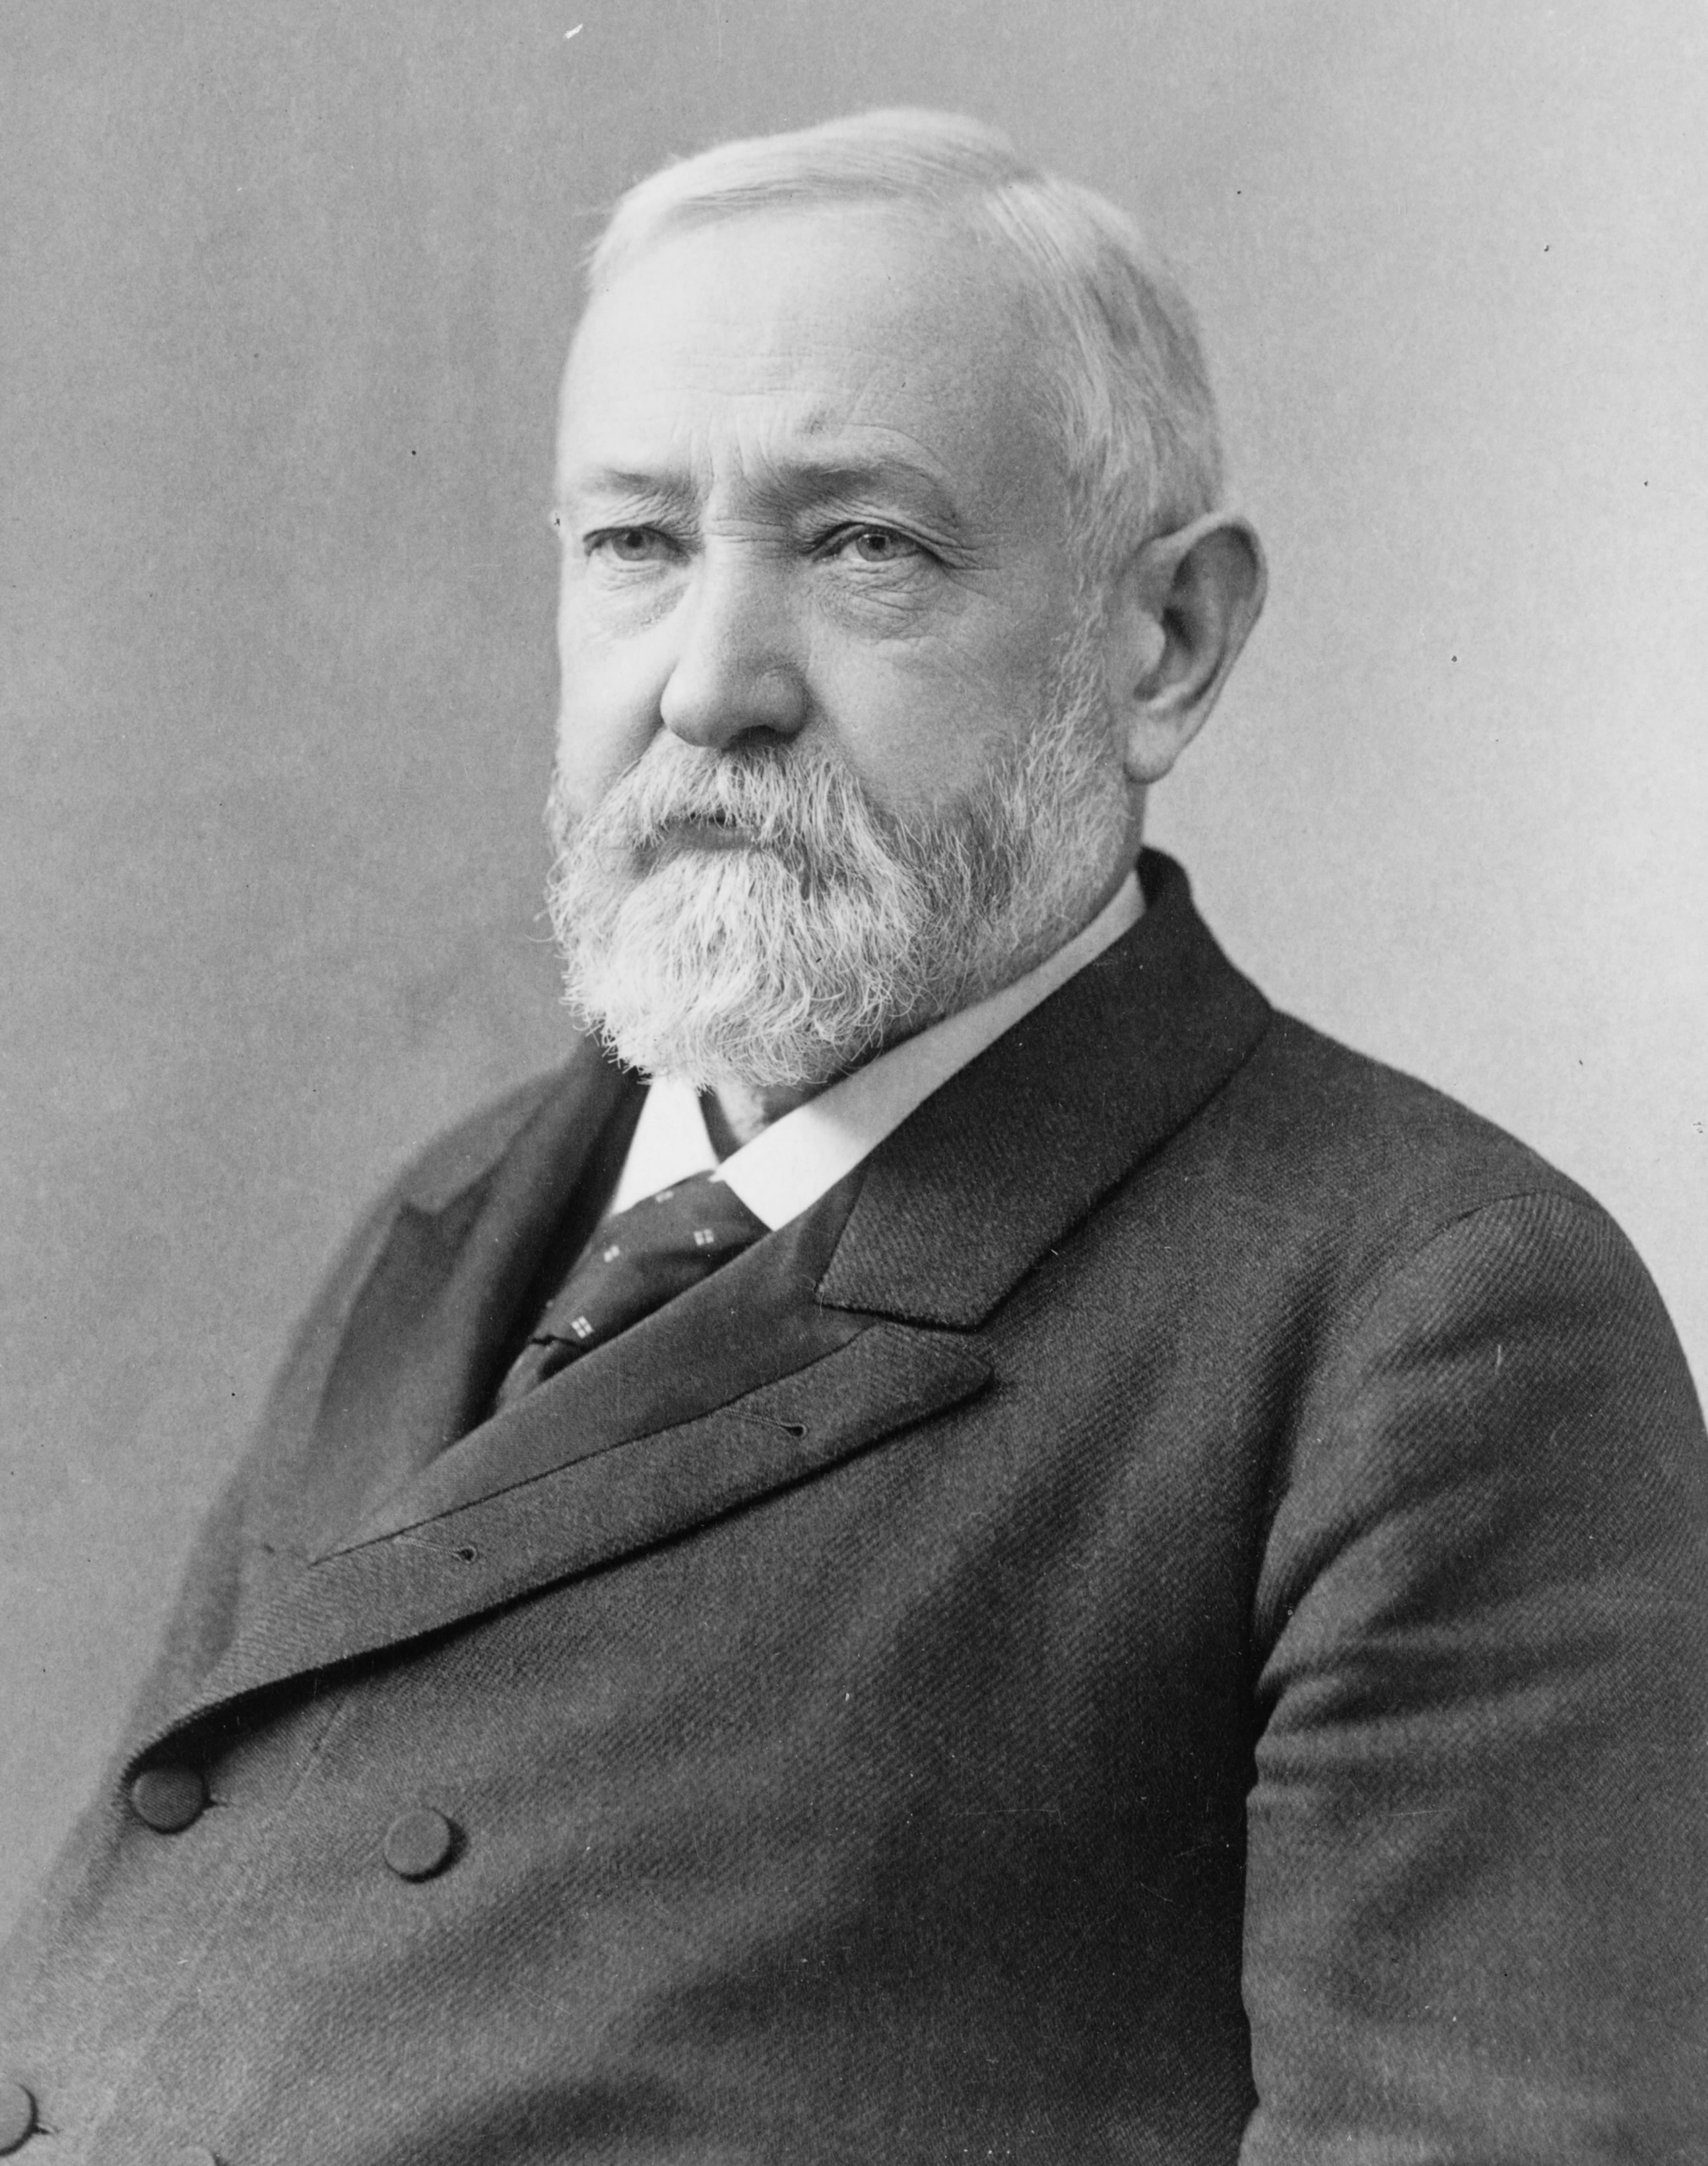 Benjamin_Harrison,_head_and_shoulders_bw